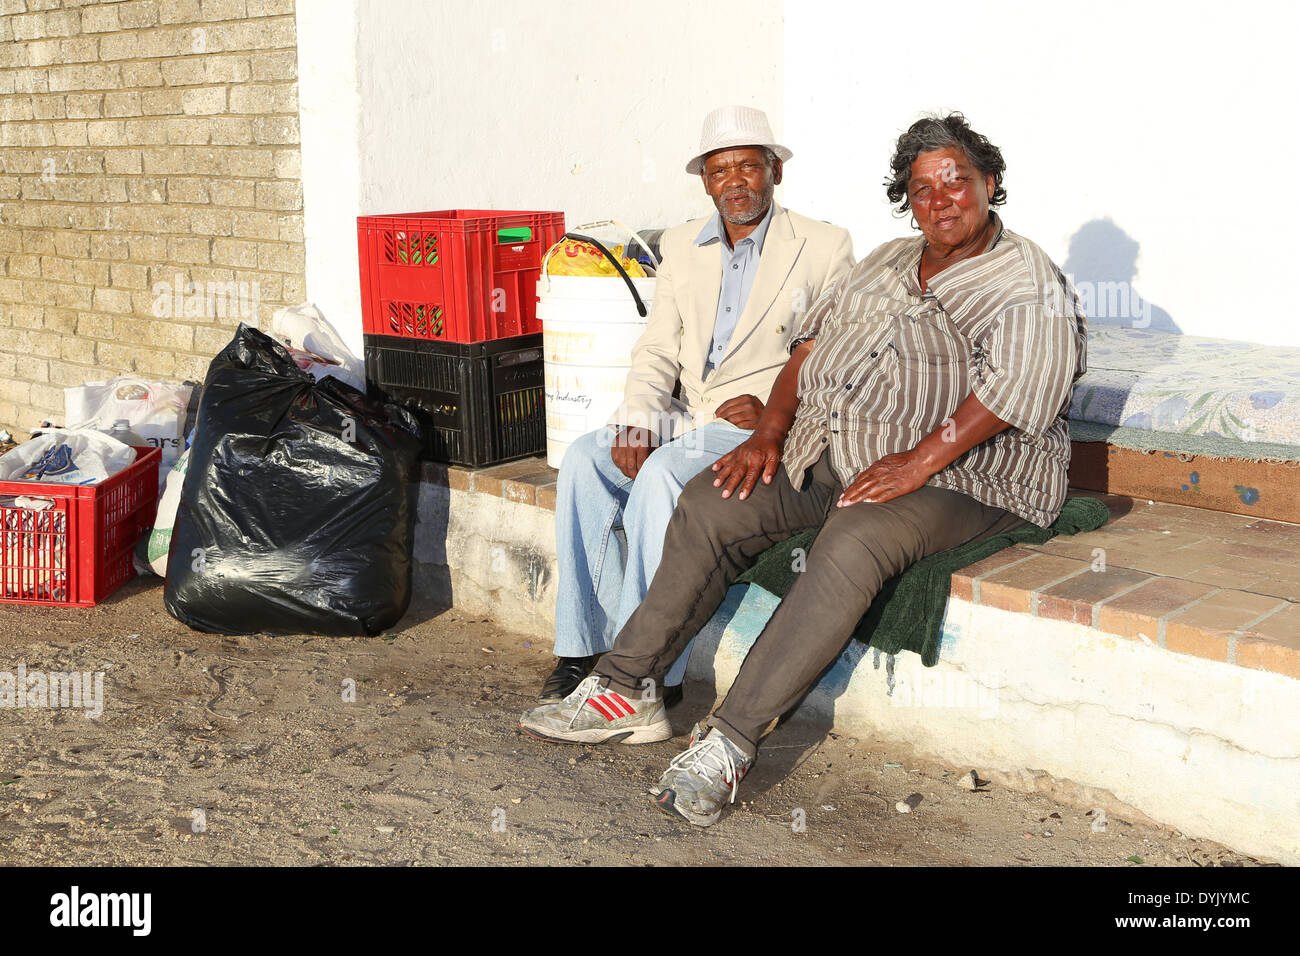 HOMELESS INDIGENT ELDERLY MIXED RACE COUPLE IN CAPE TOWN - Stock Image